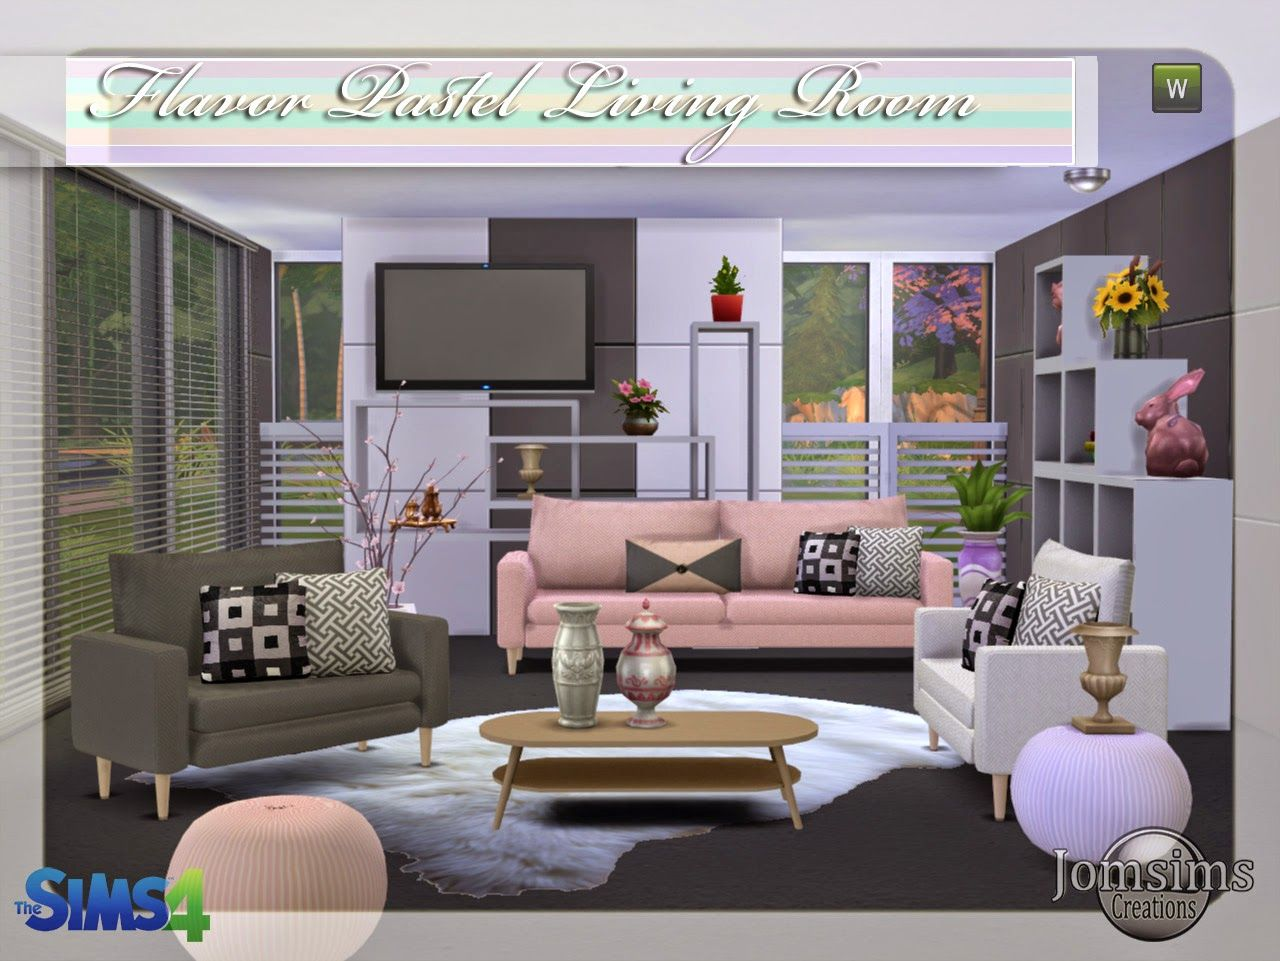 New Living Room Jomsimscreations Blog New Living Room Sims 4 Flavor Pastel Click